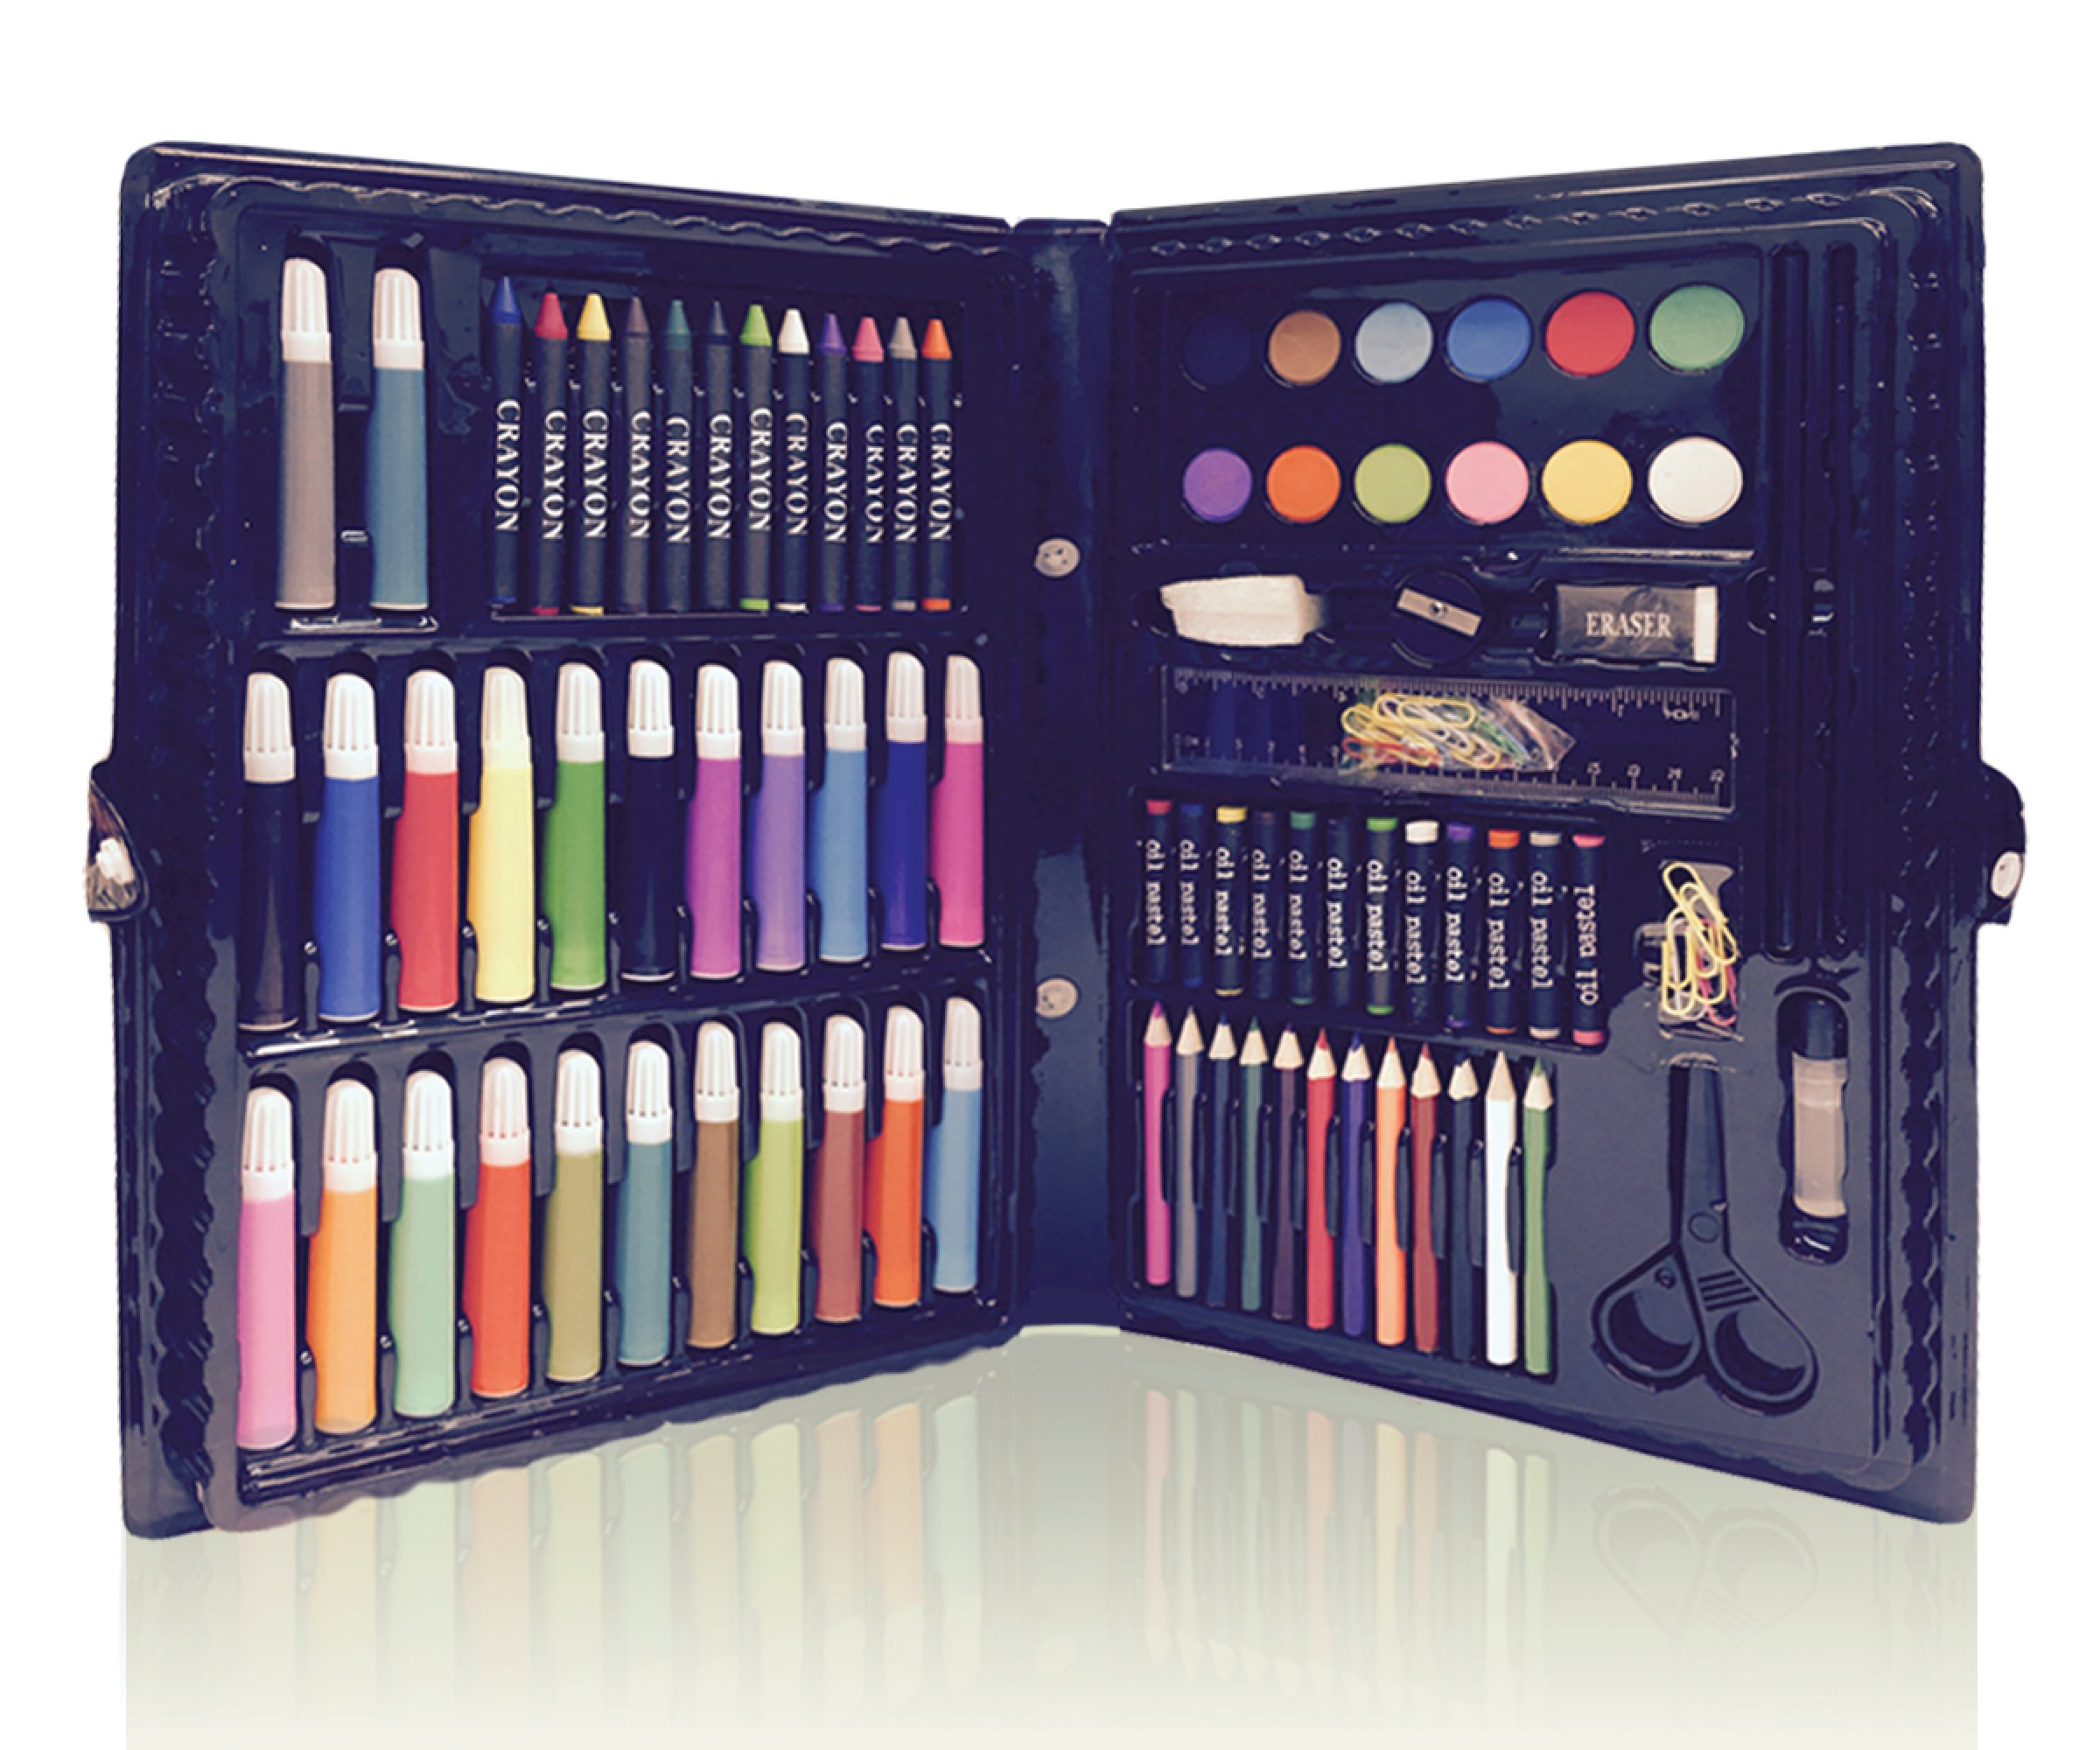 Deluxe Art Set For Kids by ART CREATIVITY - Ideal Beginner Artist Kit Includes 101 Pieces - Watercolor, Crayons, Colored Markers, Color Pencils & More + Bonus Coloring Book